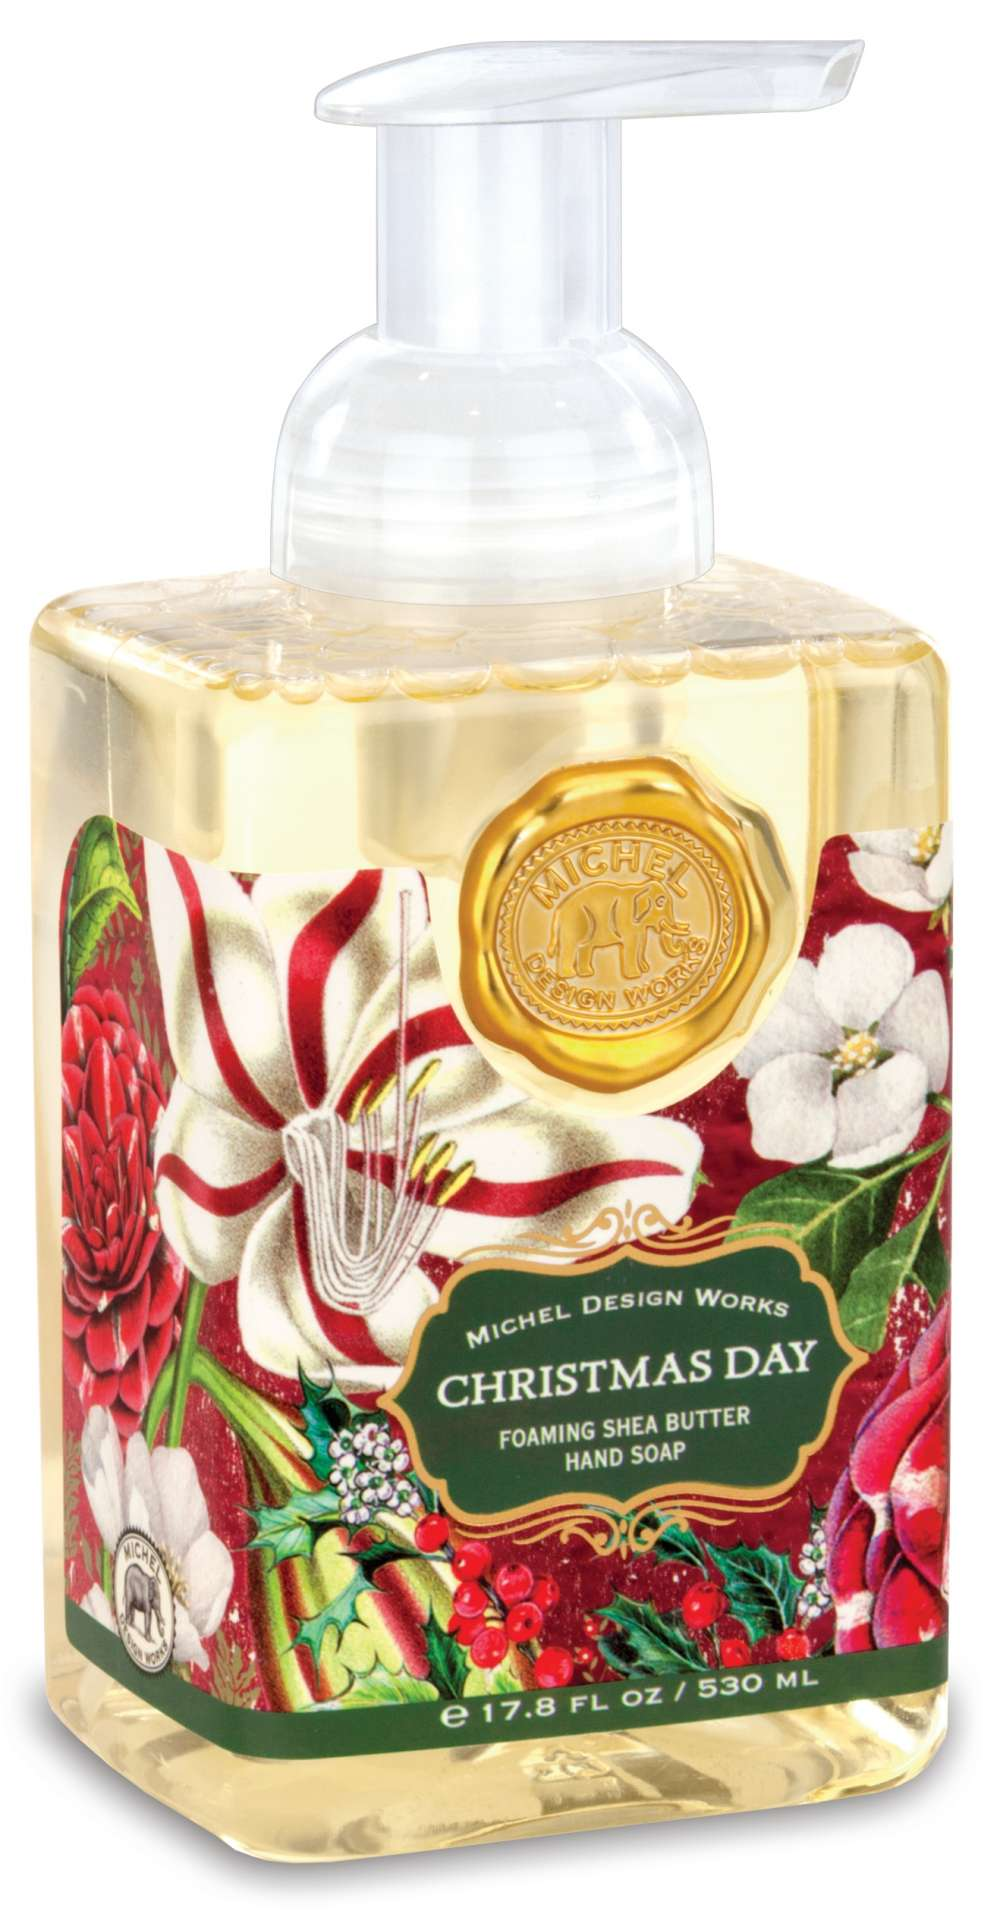 Christmas Day Foaming Soap New By Michel Design Works